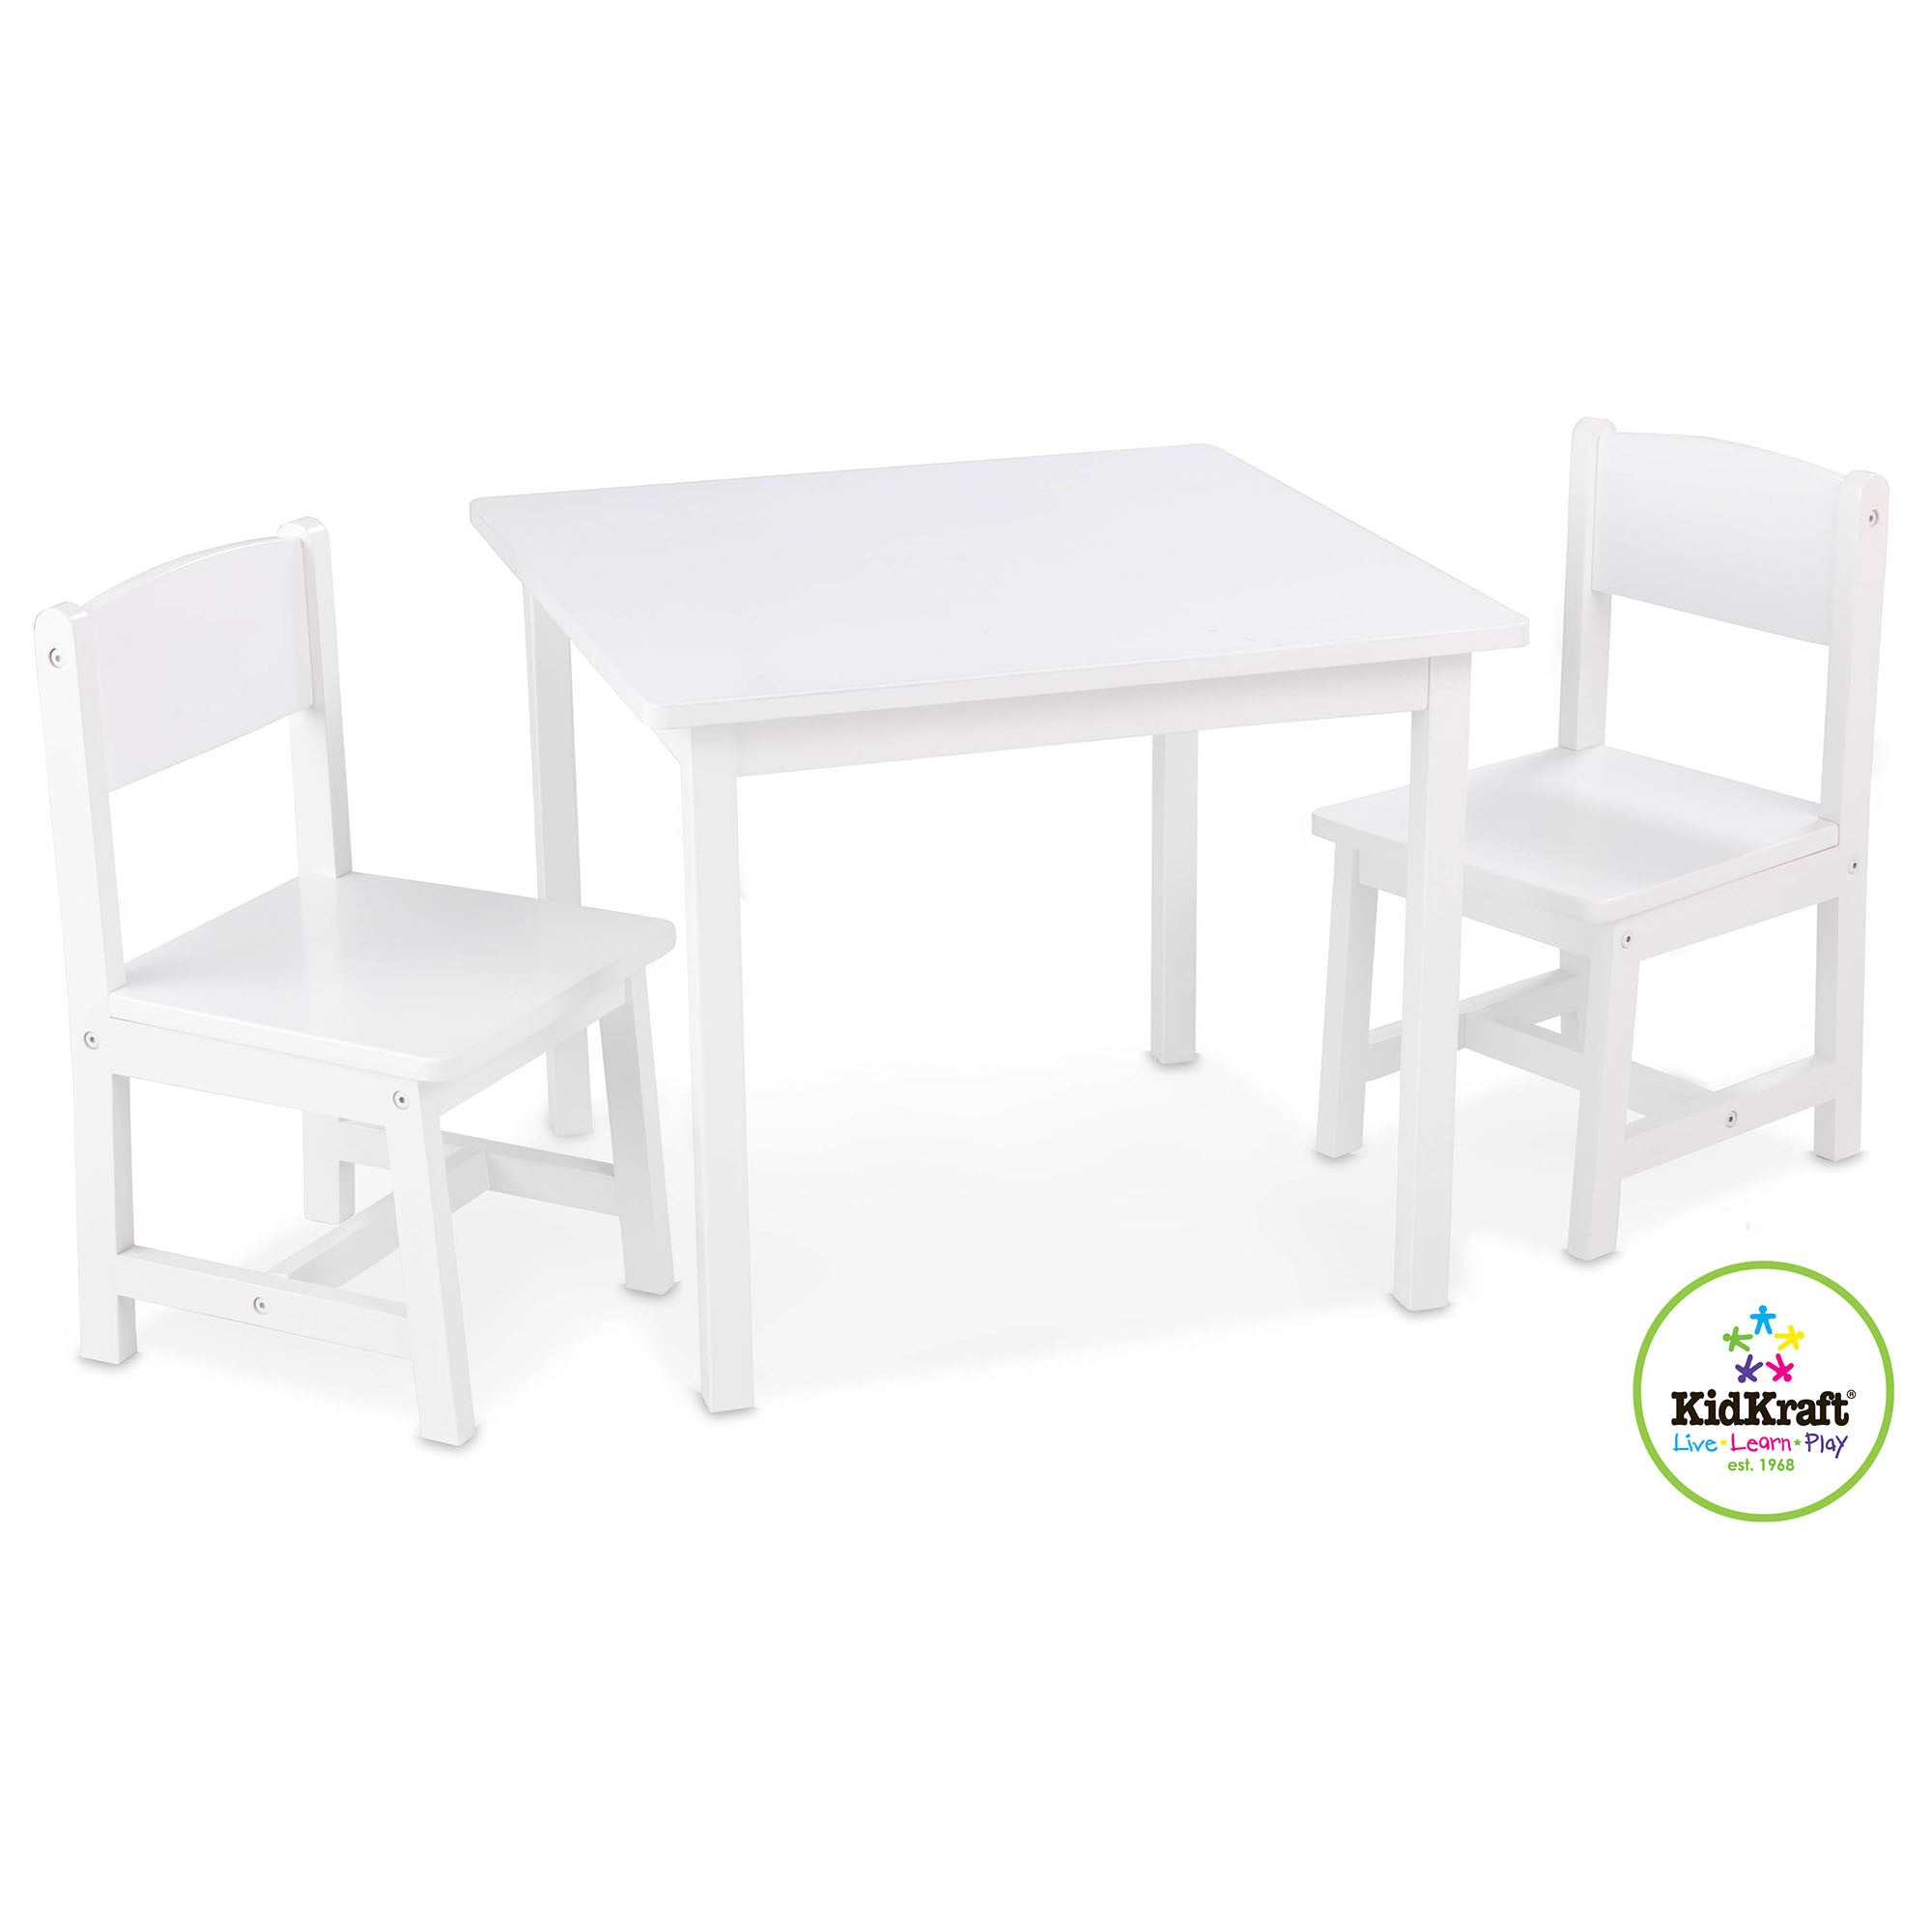 Kidkraft Aspen Table and Chairs Kidkraft Baby and Toddler Furniture Sets White at Little Earth Nest Eco Shop